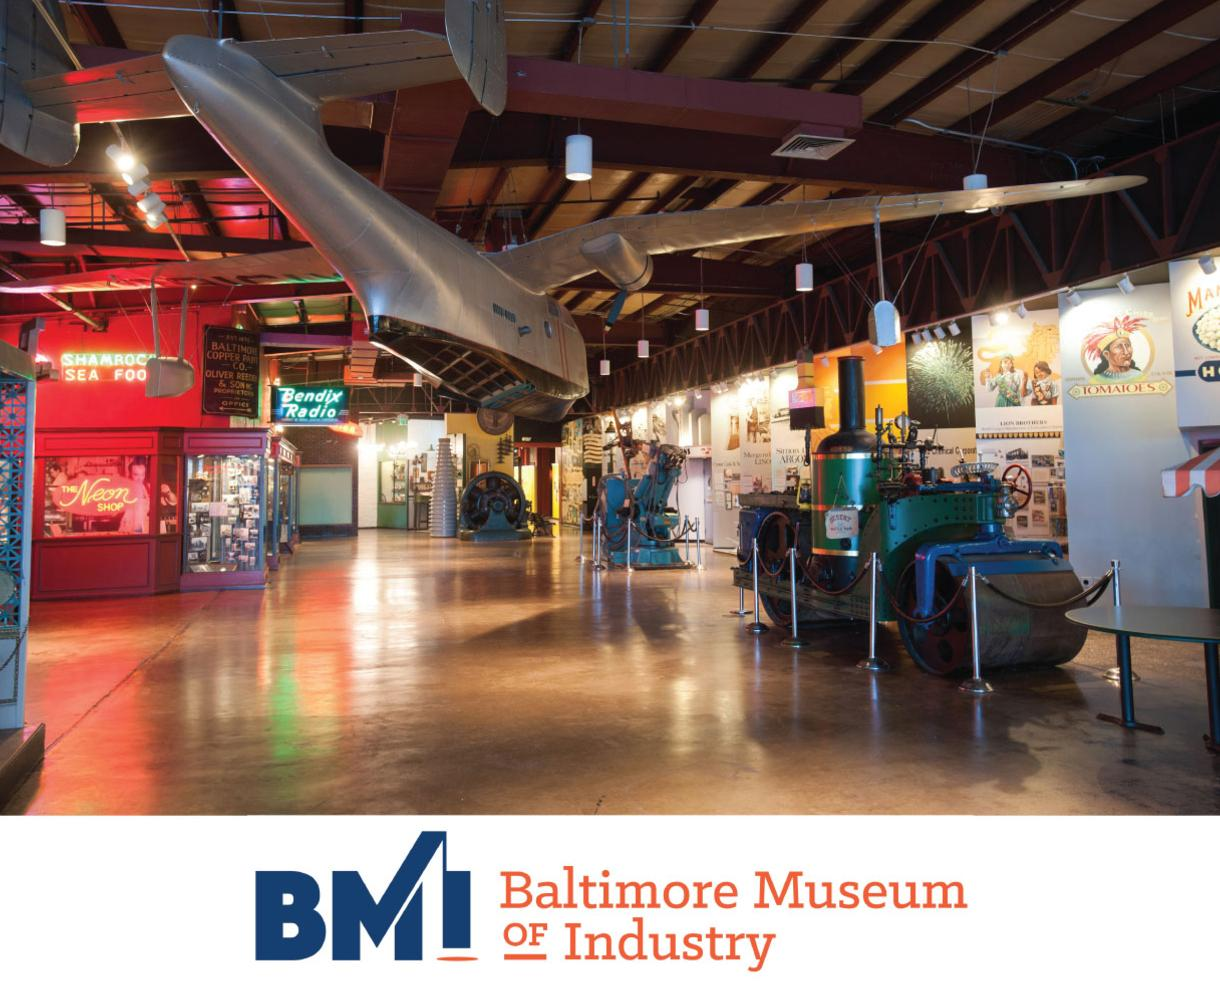 $3.50 for Youth or $6 for Adult Admission to the BALTIMORE MUSEUM OF INDUSTRY + Weekend Workers Program Included! (50% Off)